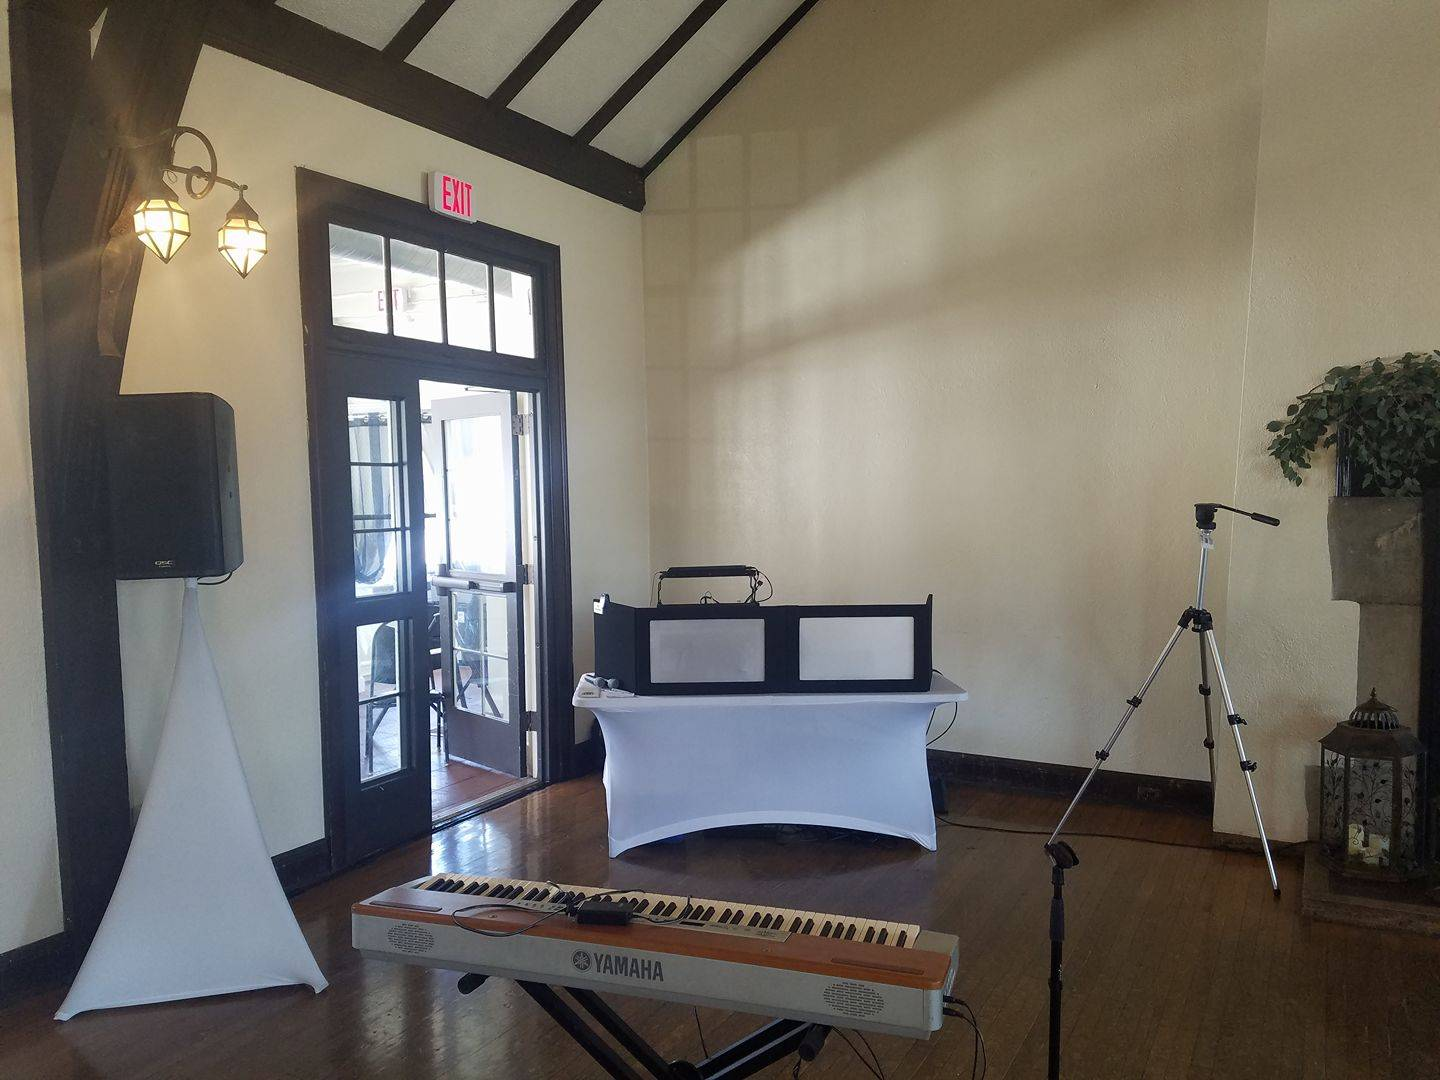 Easy, simple set up for ceremony music